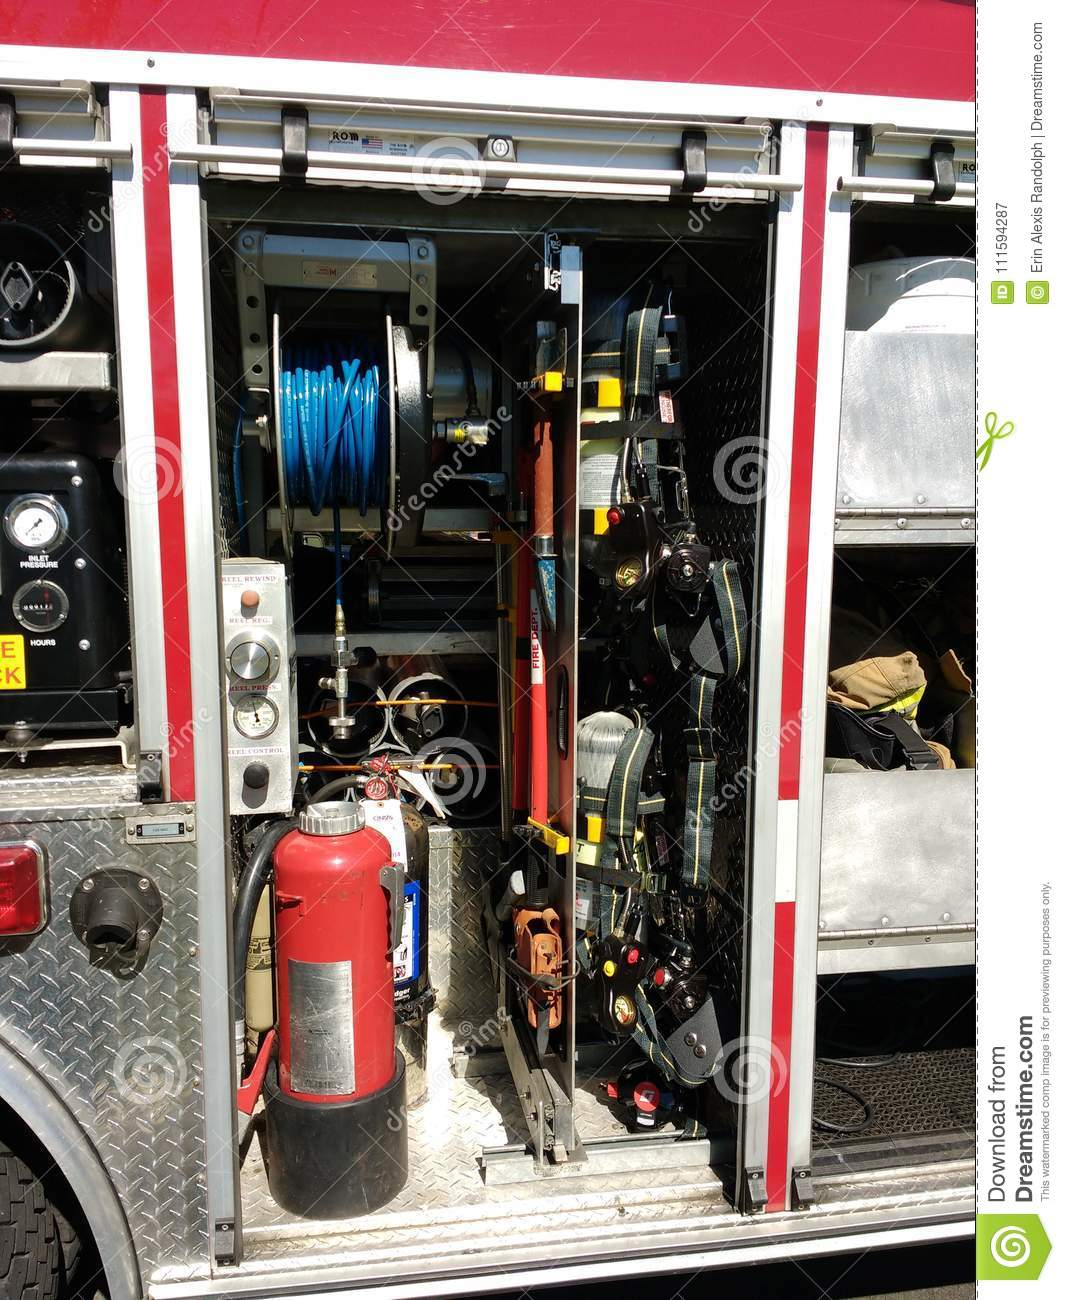 Fire Truck With Firefighting Equipment, Rutherford, NJ, USA